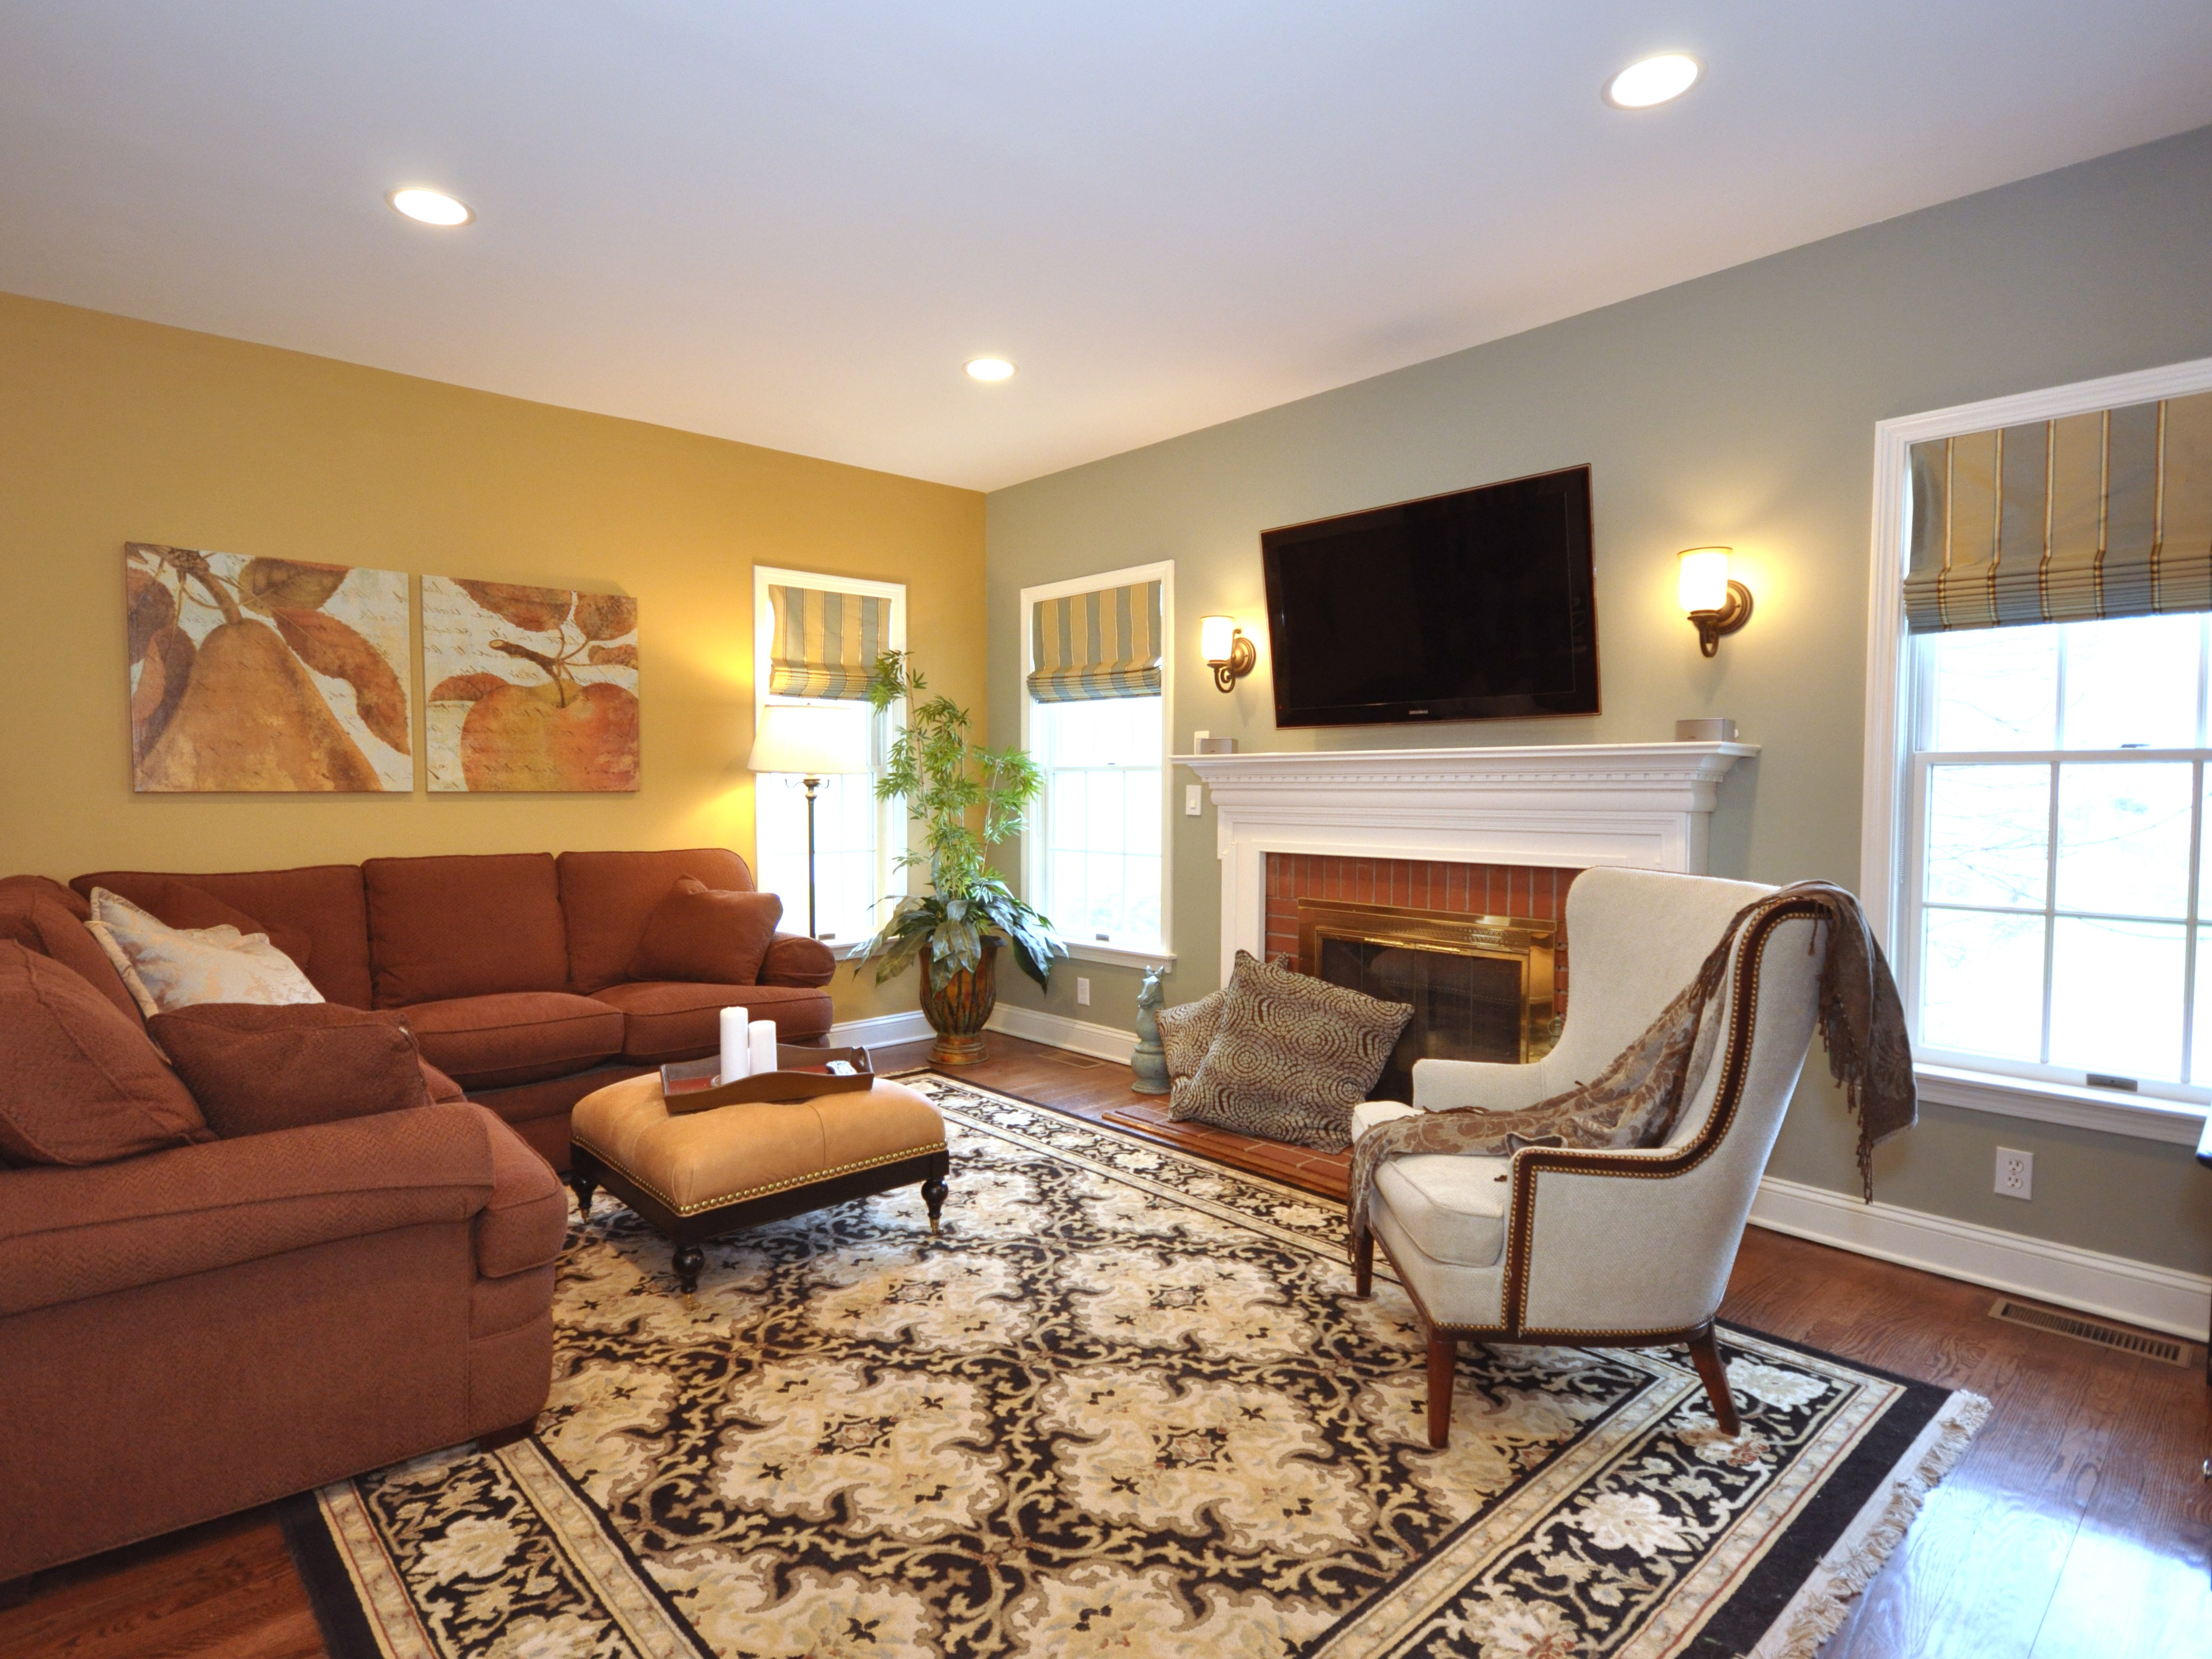 20 Best Living Room Paint And Colour Schemes 18543  Living Room Ideas